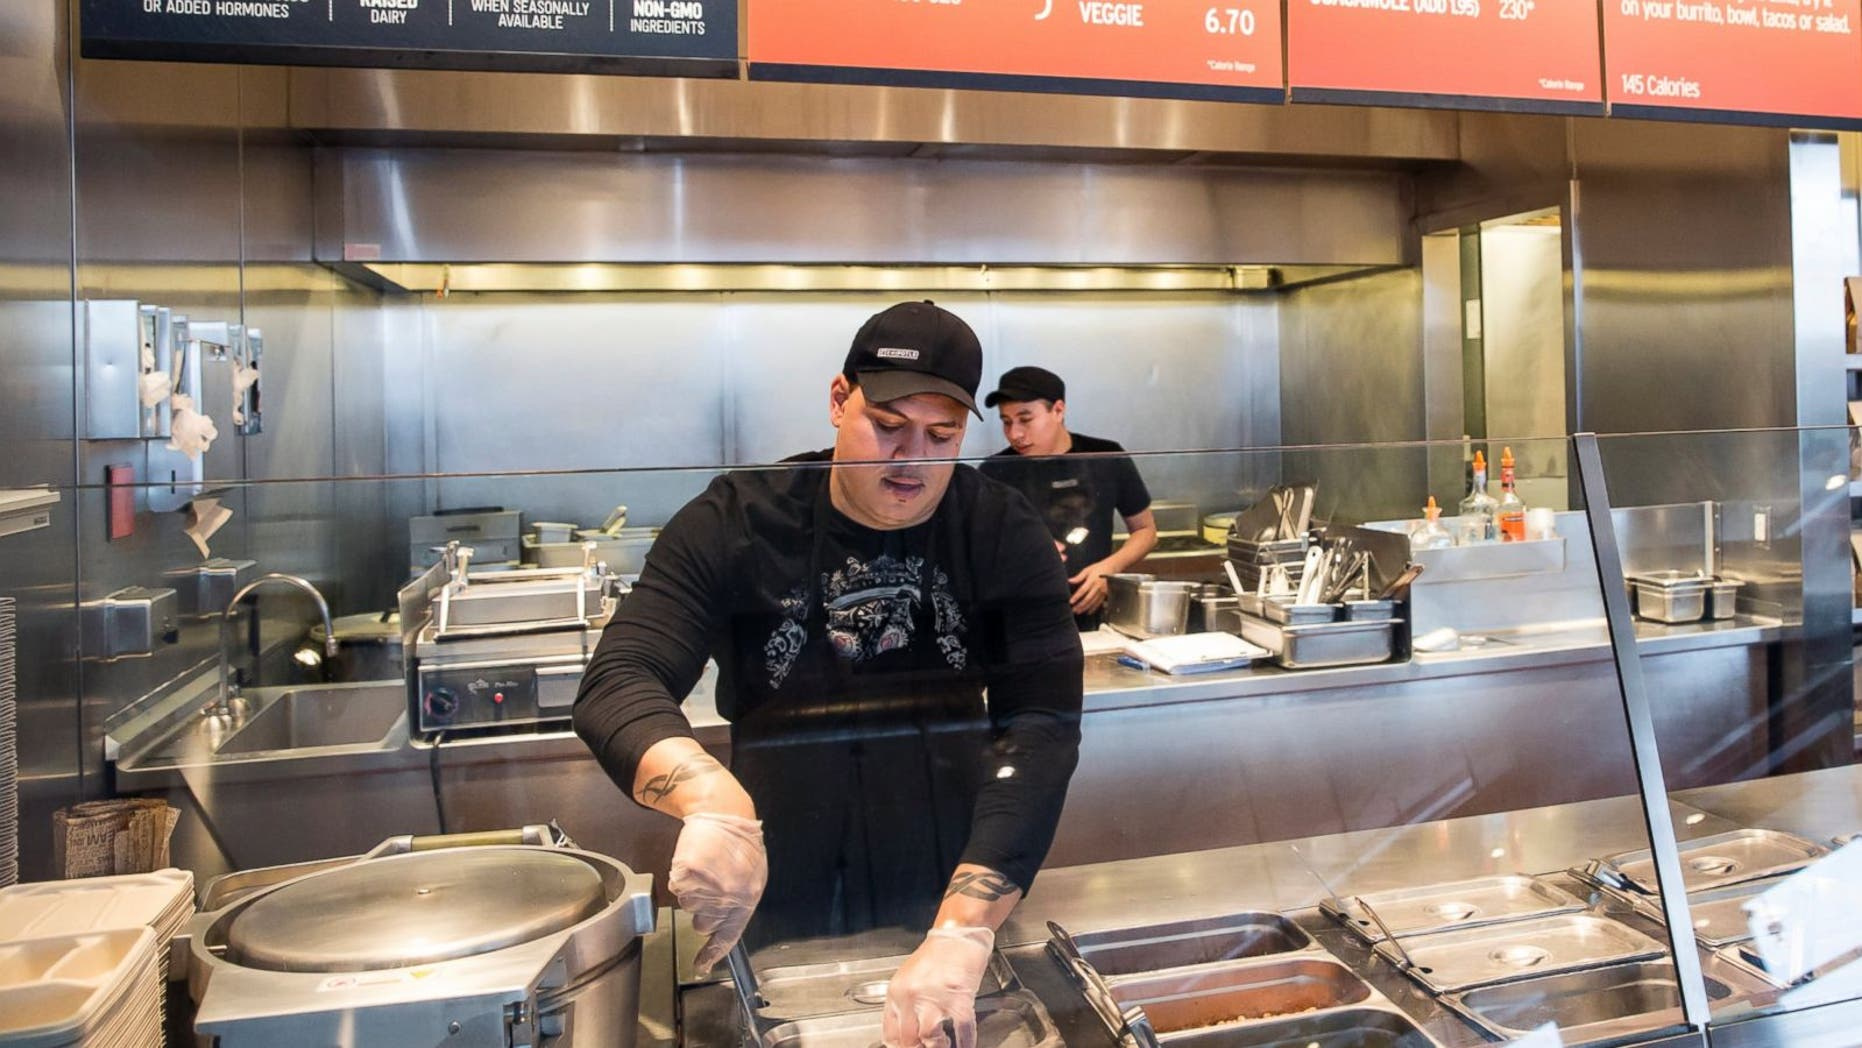 A Chipotle Mexican Grill employee prepares food in a Seattle location.